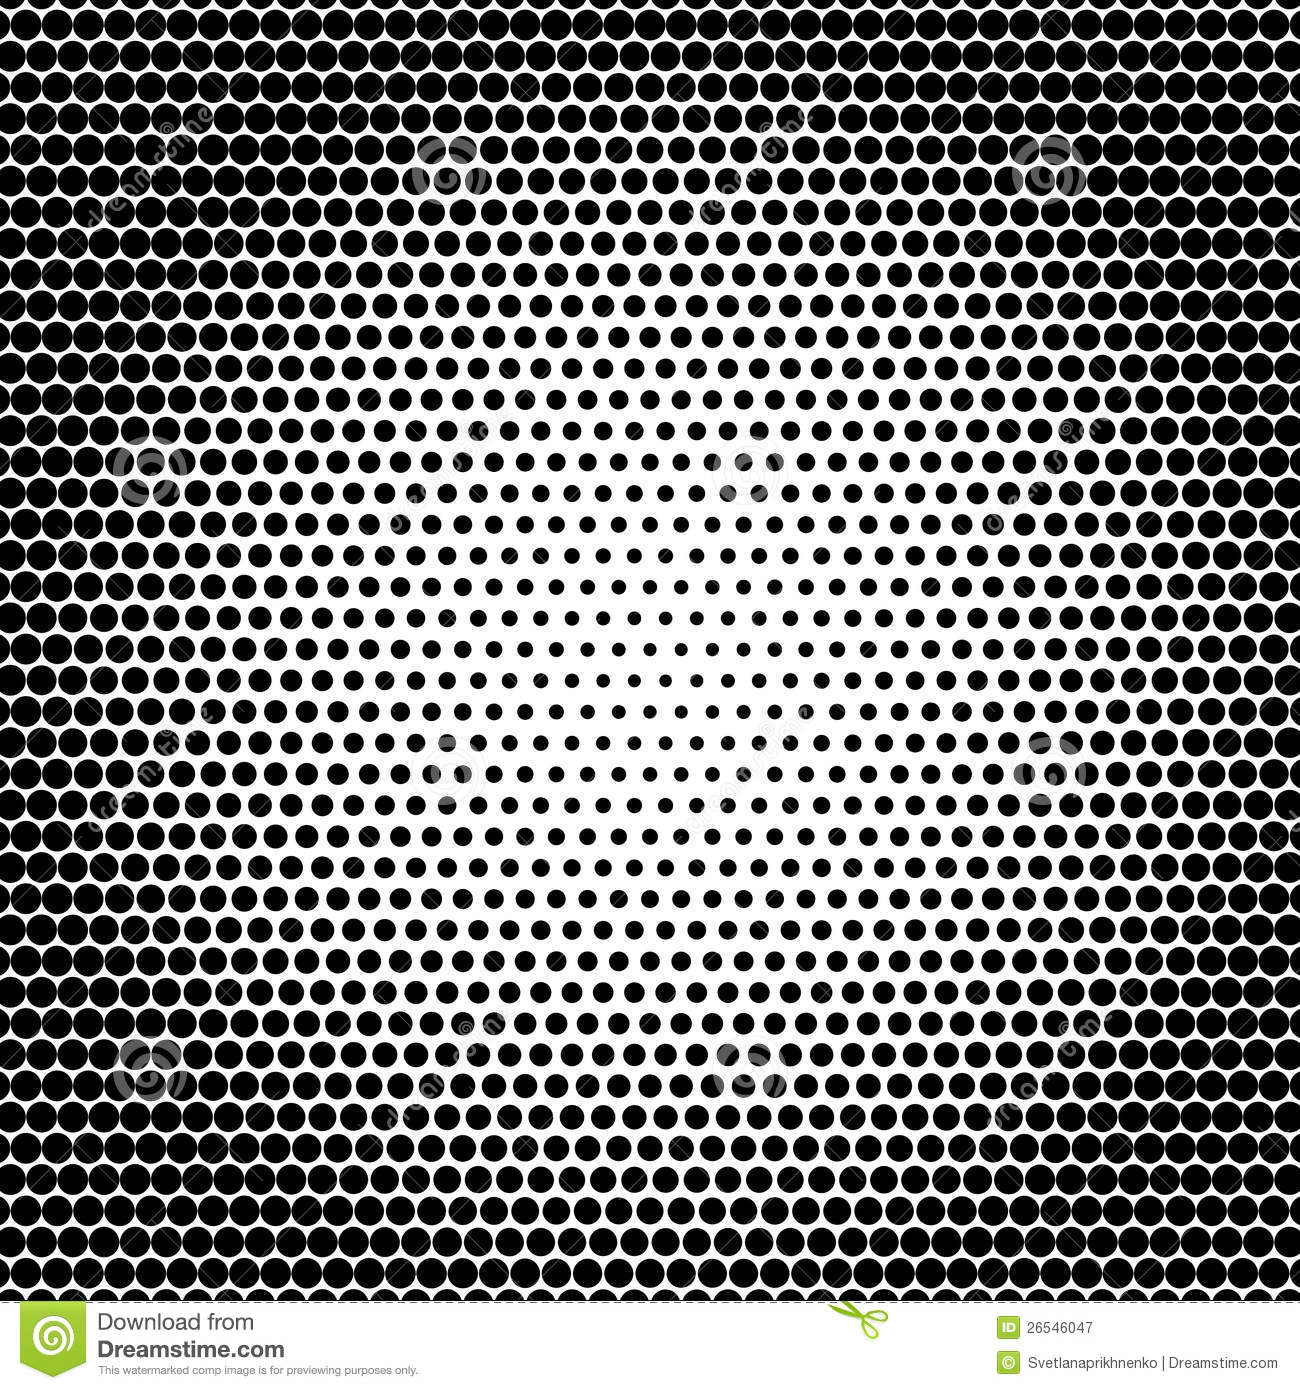 Dots Pattern Stock Vector Image Of Dots Design Raster 26546047